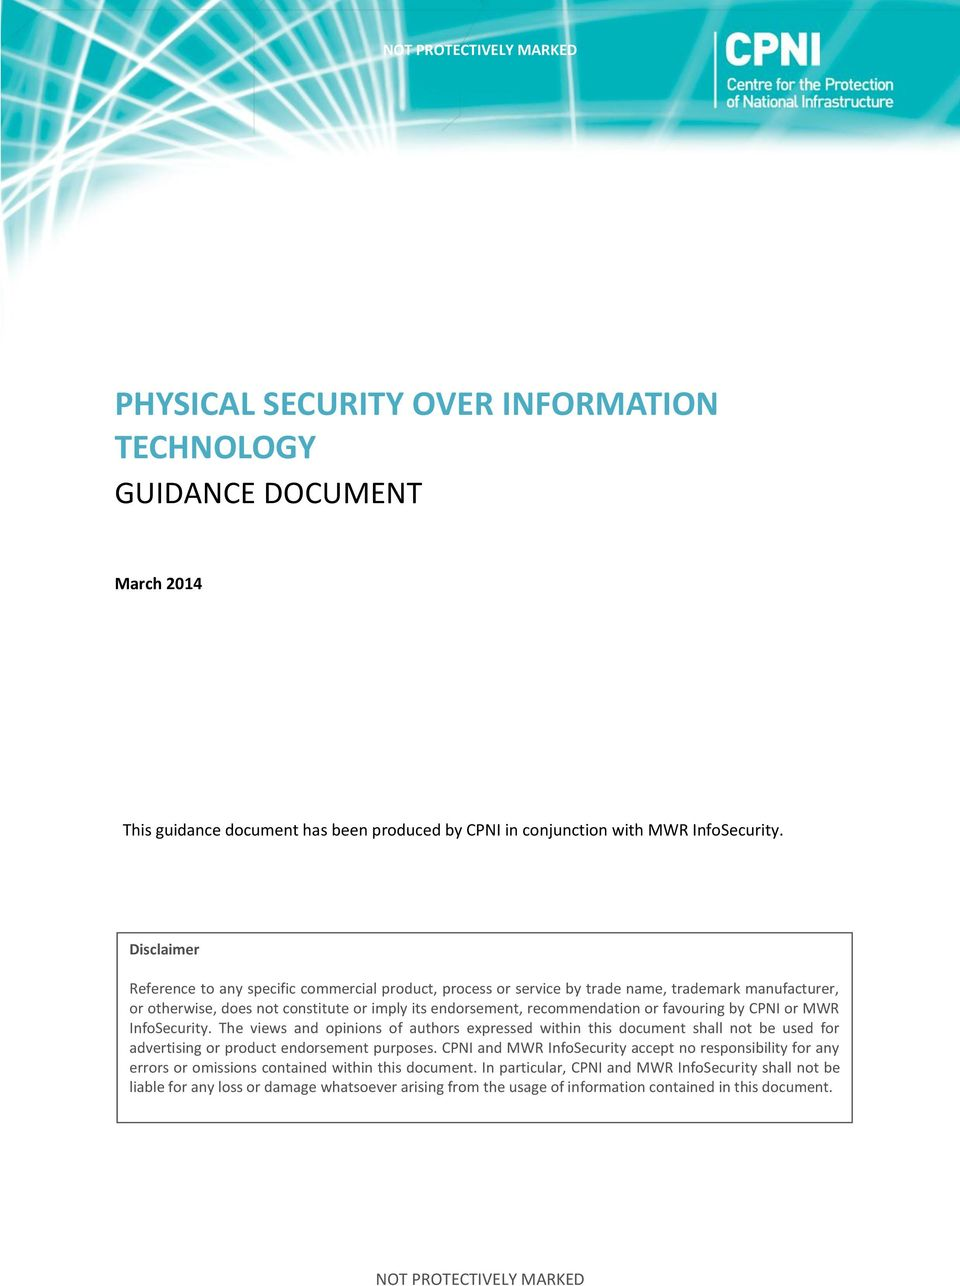 favouring by CPNI or MWR InfoSecurity. The views and opinions of authors expressed within this document shall not be used for advertising or product endorsement purposes.